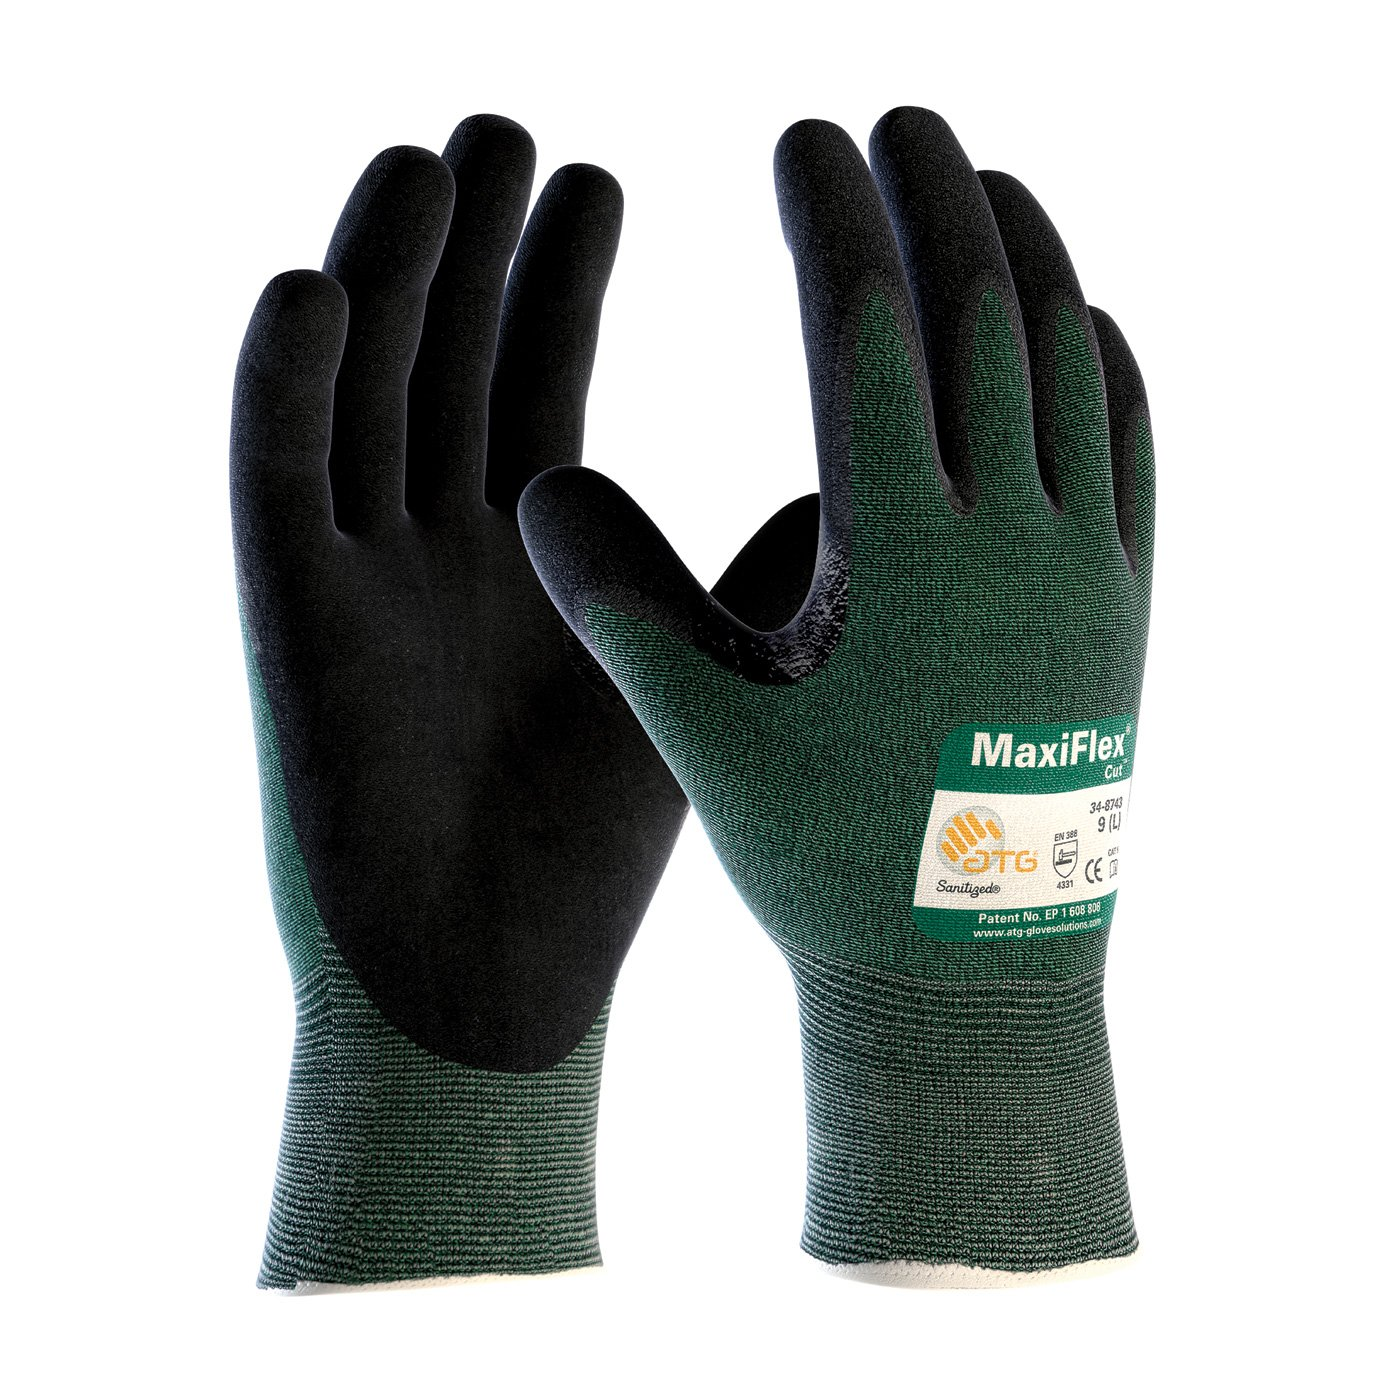 3 Pack MaxiFlex Cut 34-8743 Cut Resistant Nitrile Coated Work Gloves with Green Knit Shell and Premium Nitrile Coated Micro-Foam Grip on Palm & Fingers. Sizes S-XL (Large) by Maxiflex